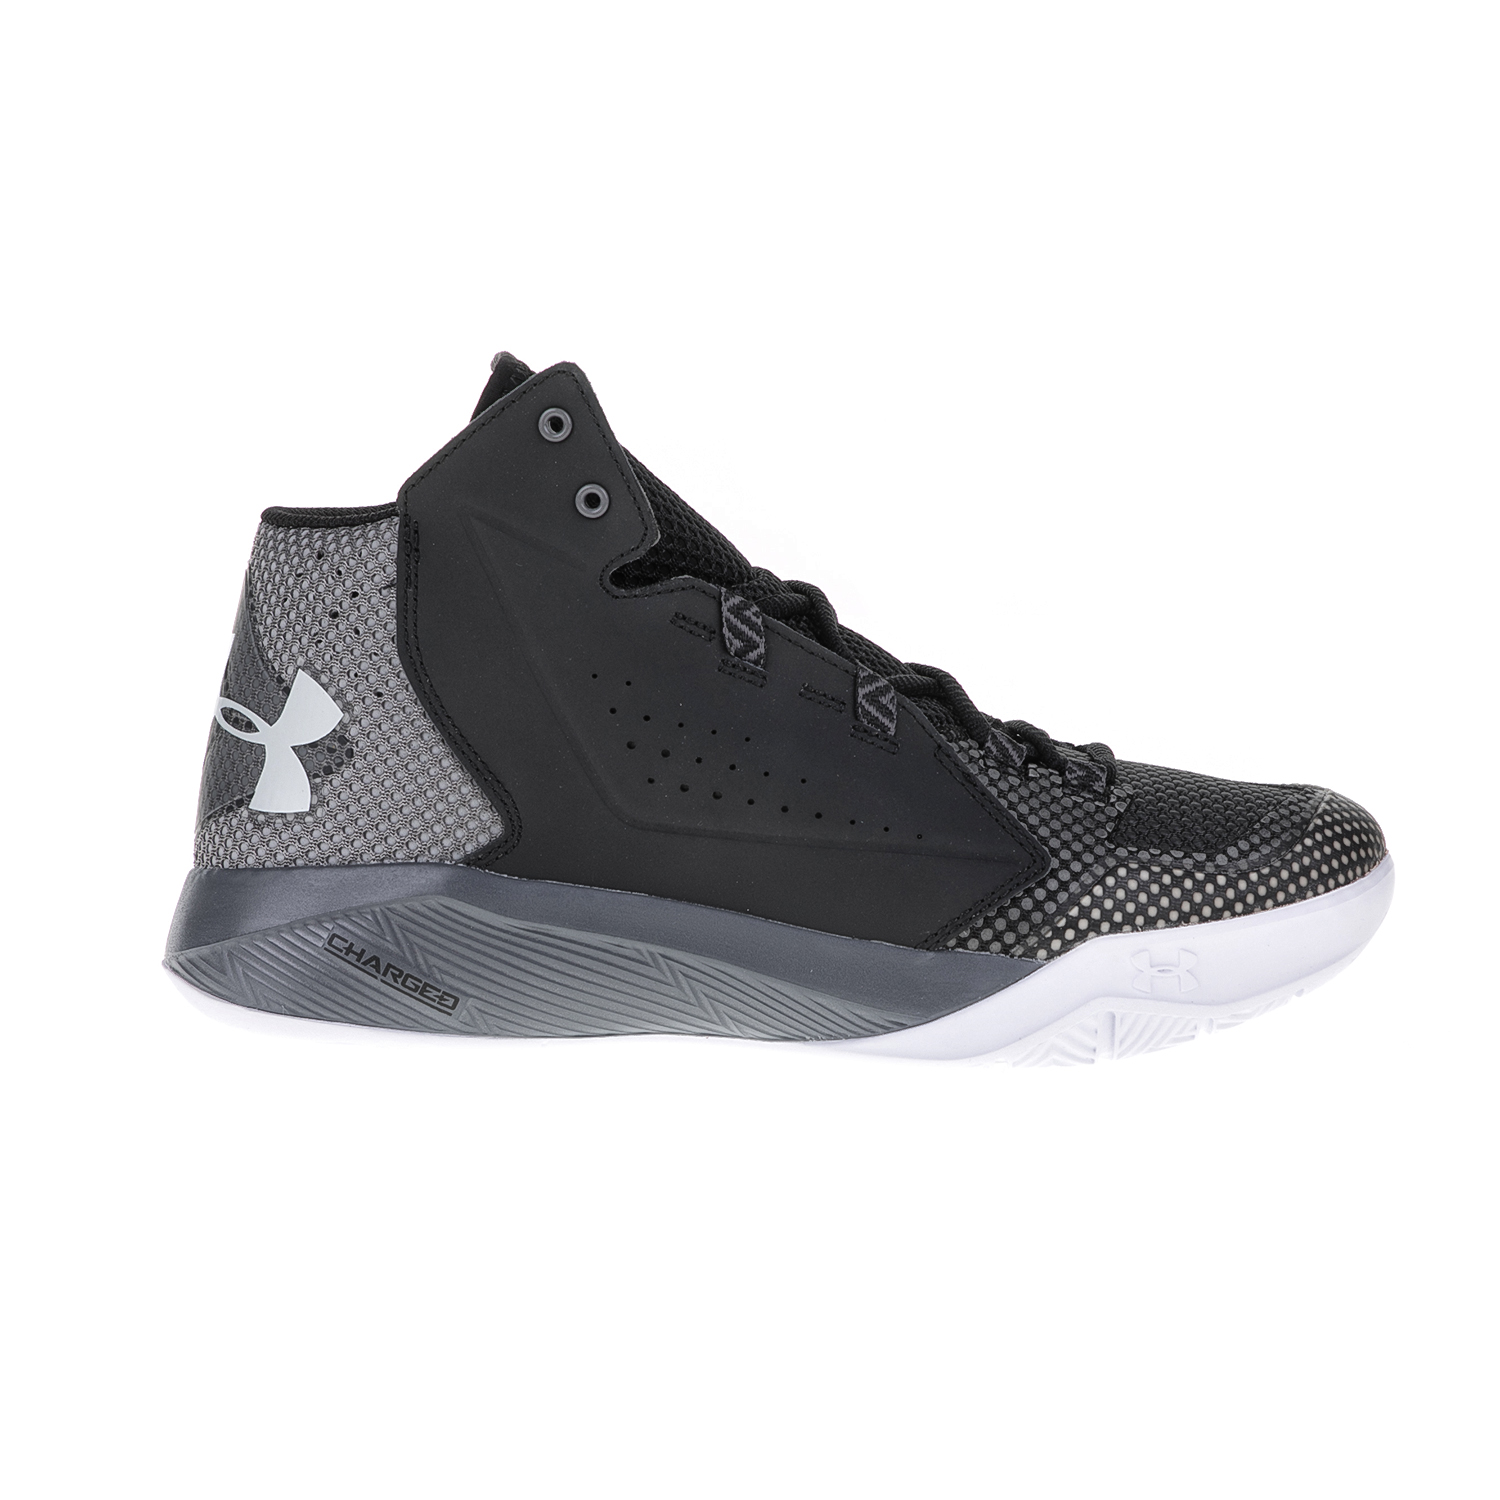 UNDER ARMOUR – Ανδρικά παπούτσια μπάσκετ UNDER ARMOUR Torch Fade γκρι-μαύρα